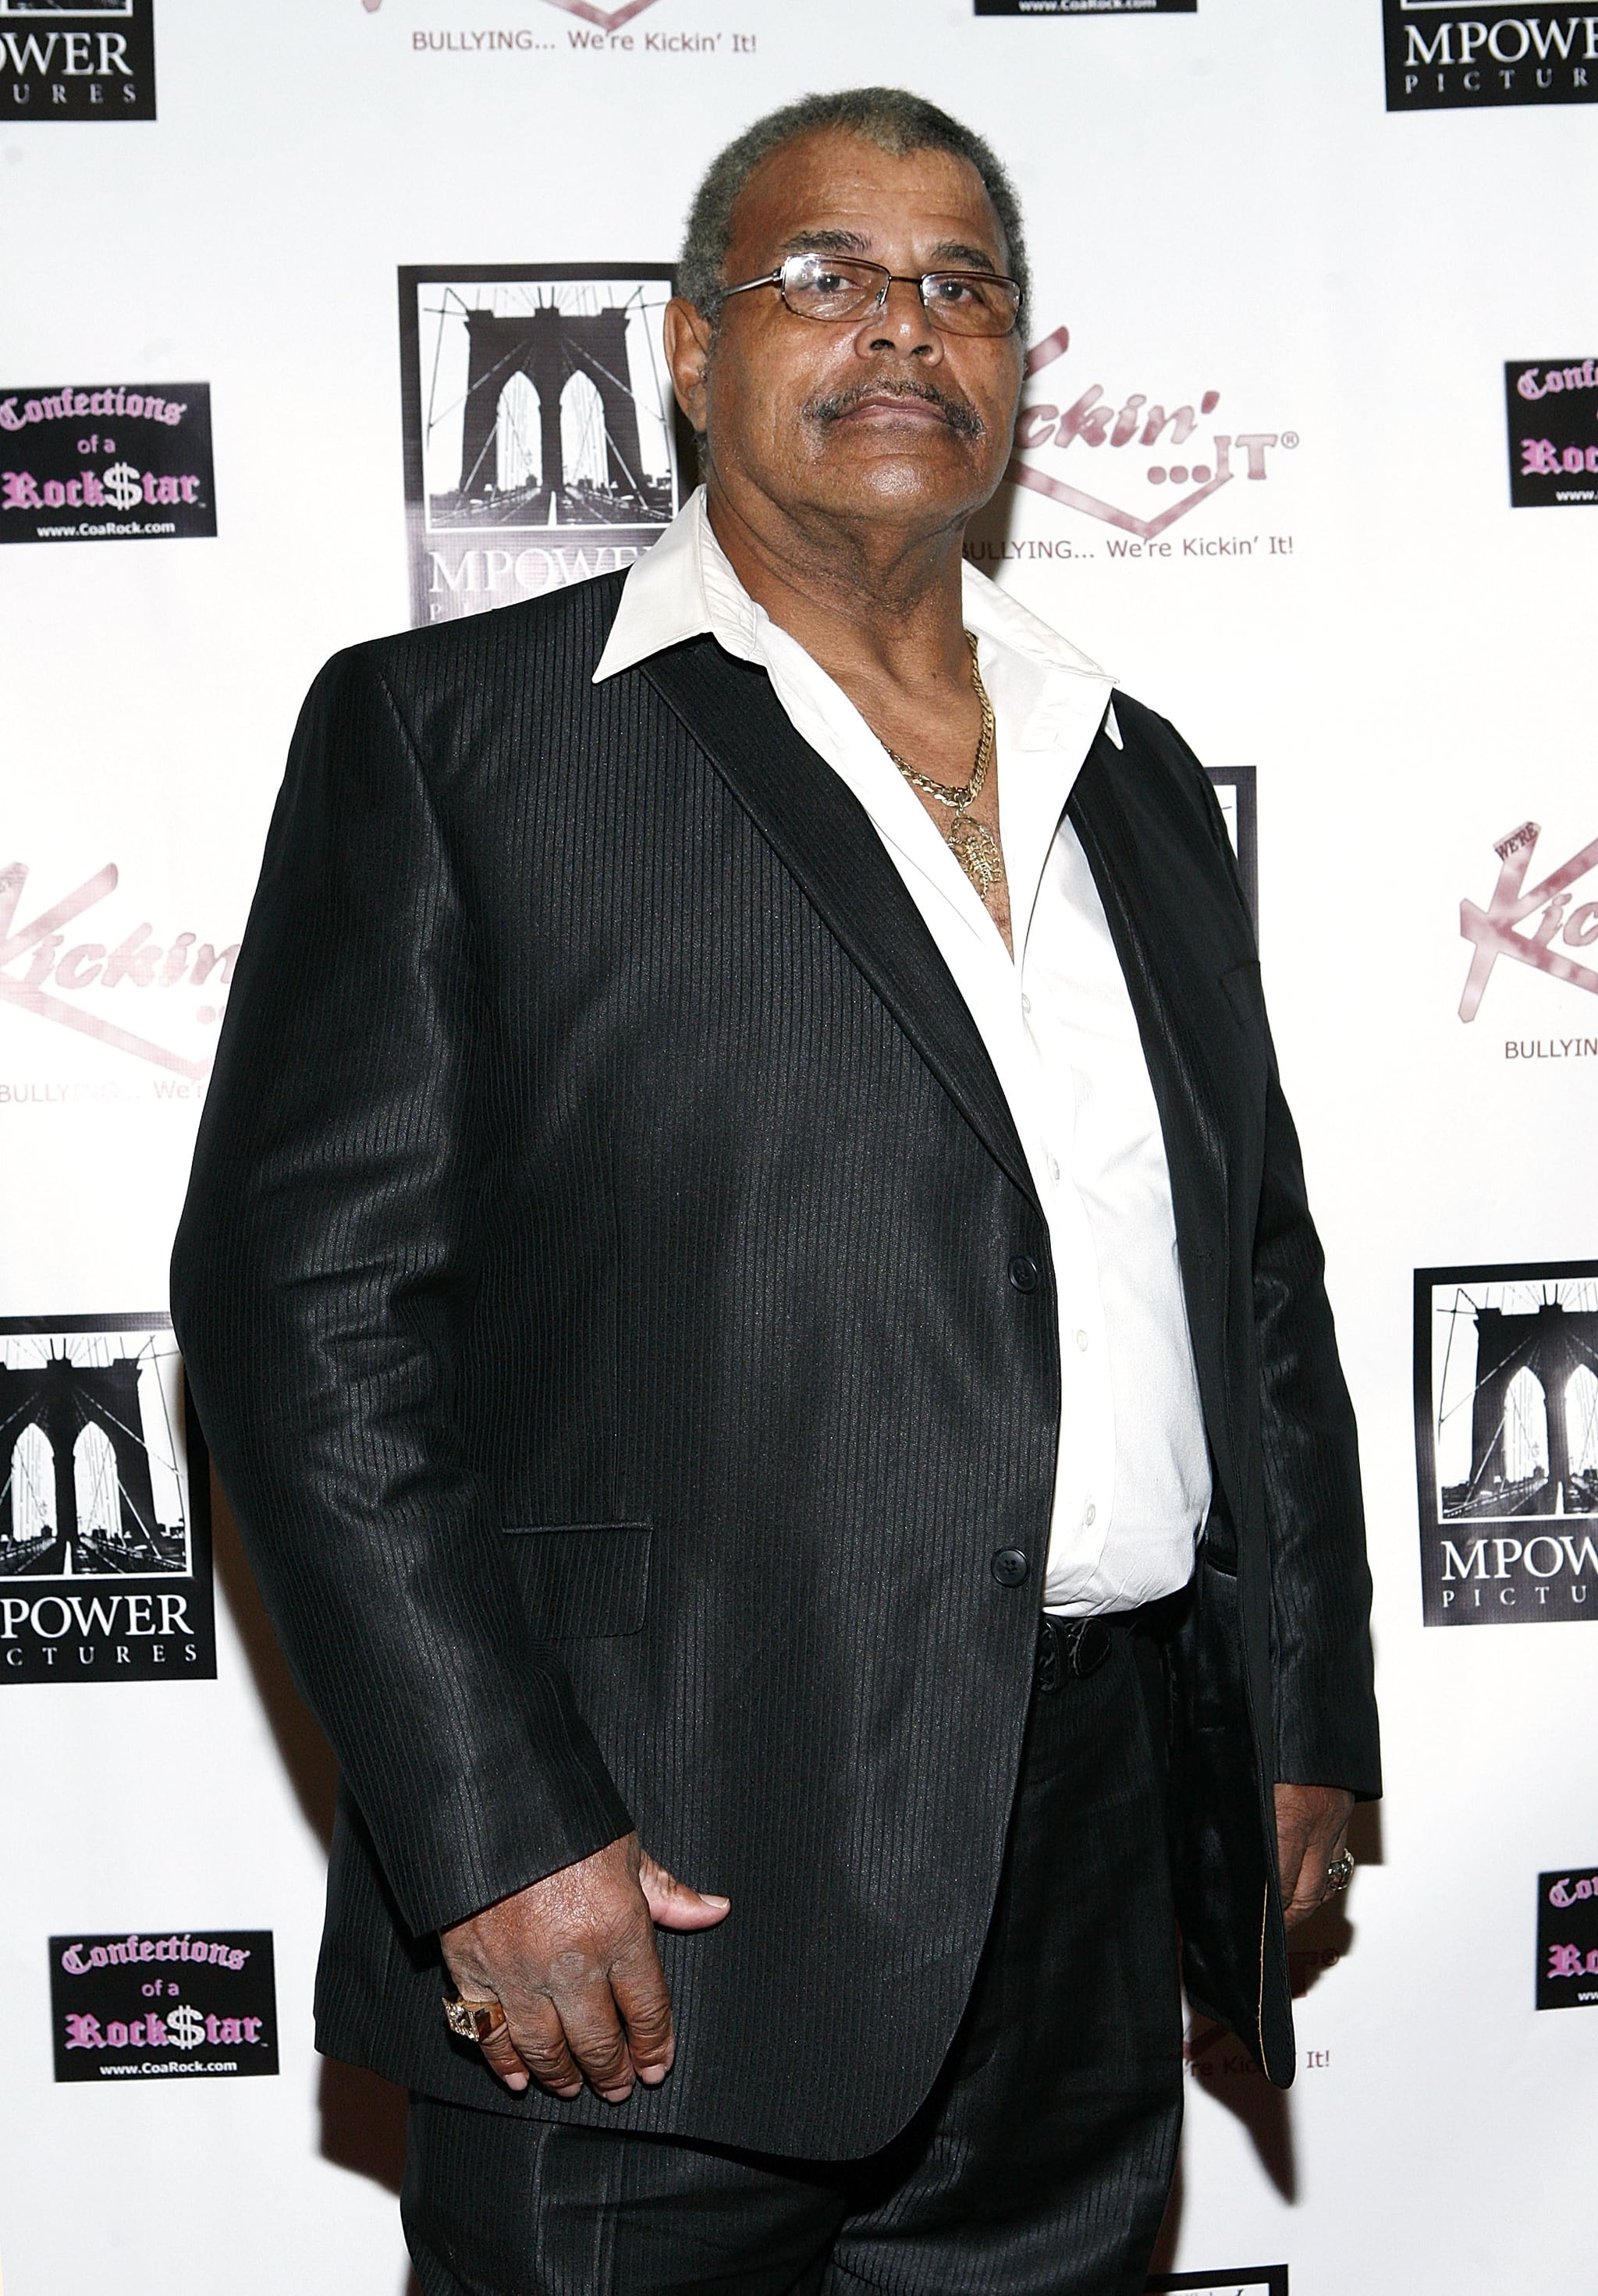 NEW YORK, NY - OCTOBER 20:  Rocky Johnson attends Unite in the Fight... to Knockout Bullying at the Hard Rock Cafe New York on October 20, 2011 in New York City.  (Photo by John Lamparski/WireImage)